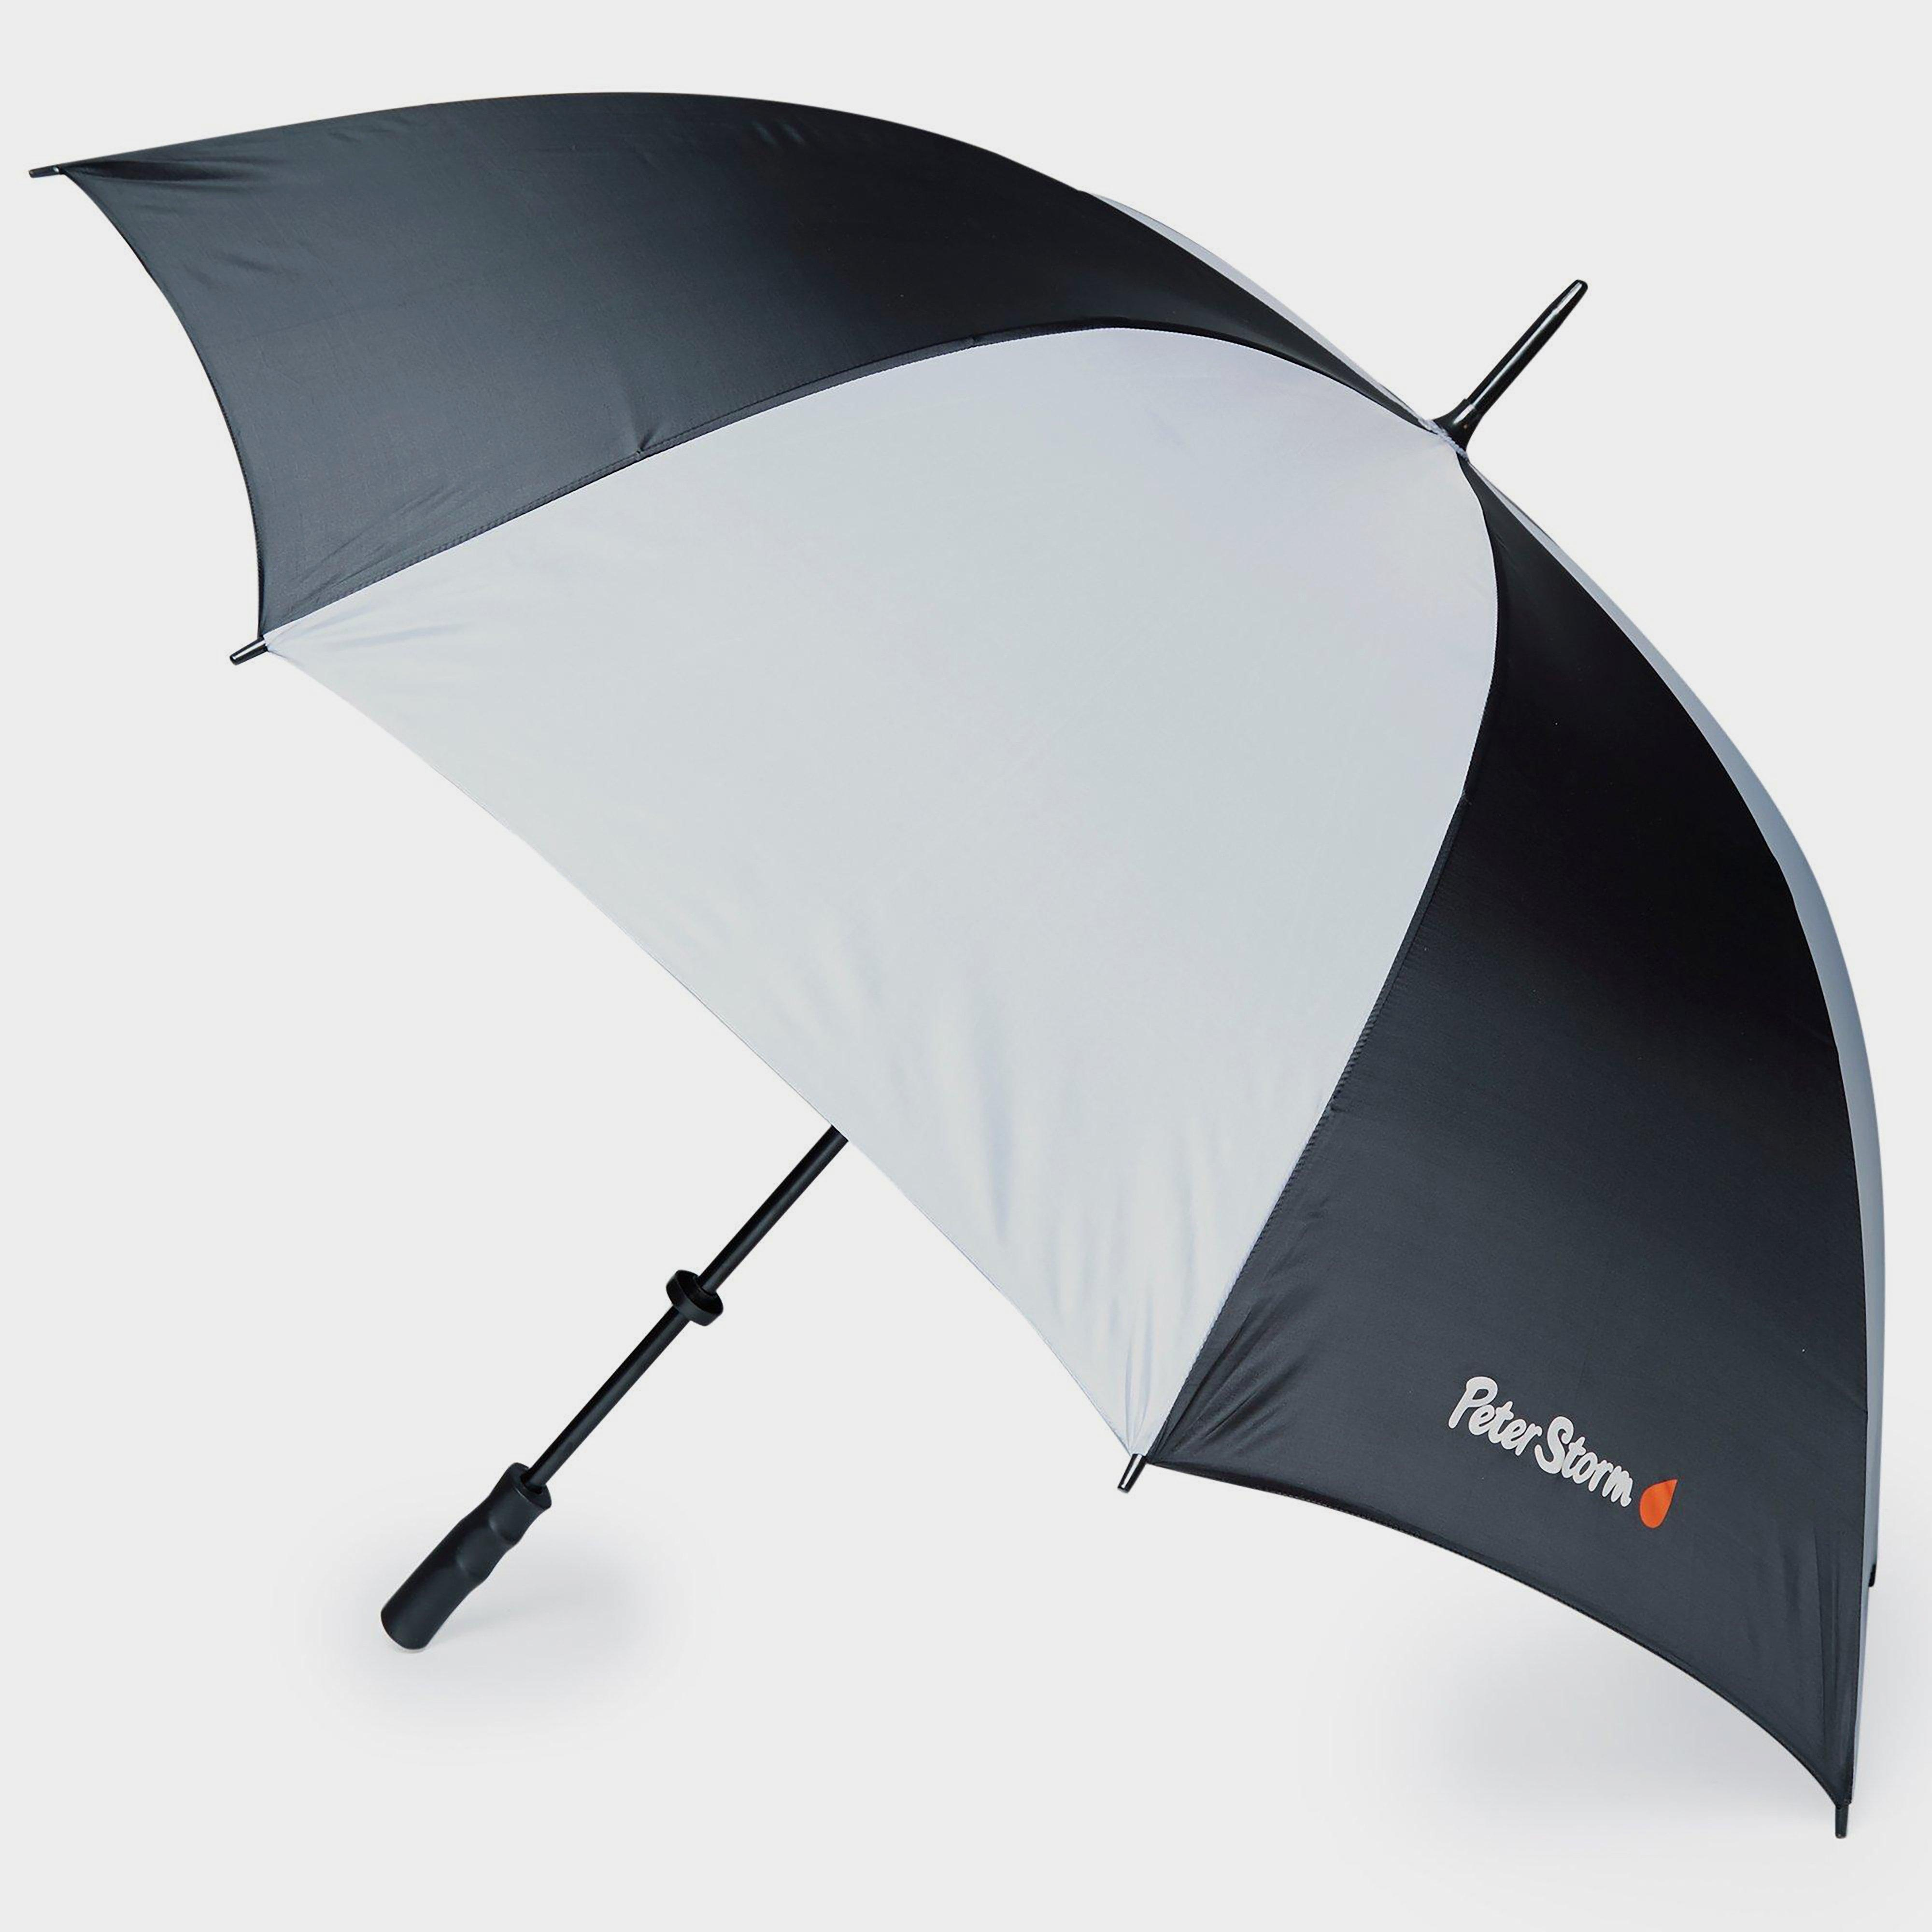 Image of Peter Storm Golf Umbrella - Multi/Blk/Gry, Multi/BLK/GRY